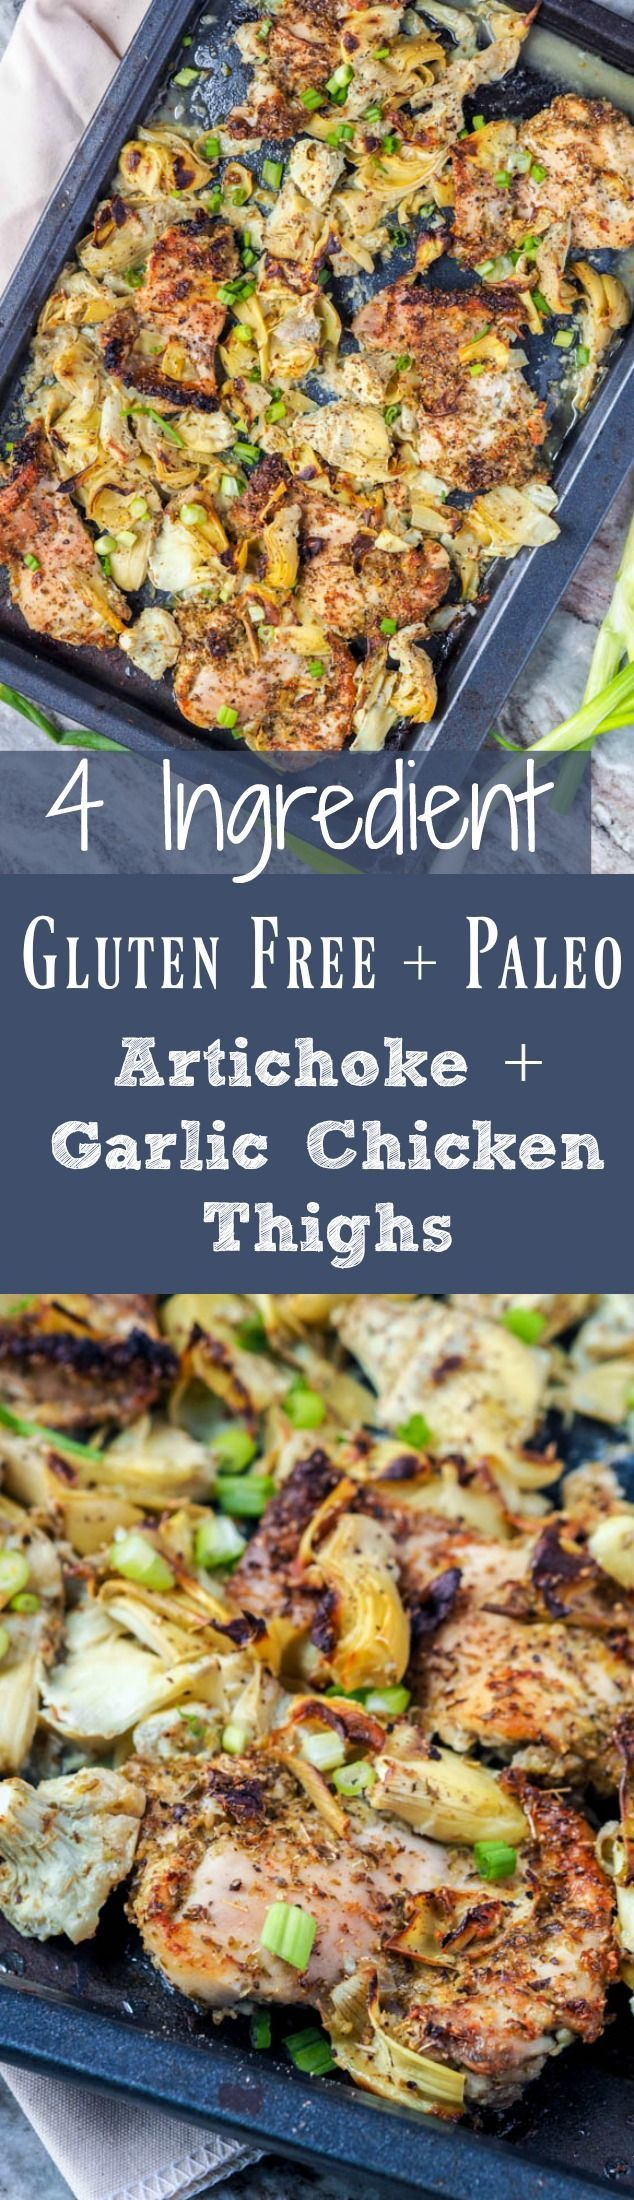 Only 4 ingredients needed for these low fuss, minimal clean up 30 minute artichoke and garlic broiled chicken thighs. A classic go to weeknight dinner recipe. Healthy and delicious. Gluten Free and Dairy Free. | http://avocadopesto.com